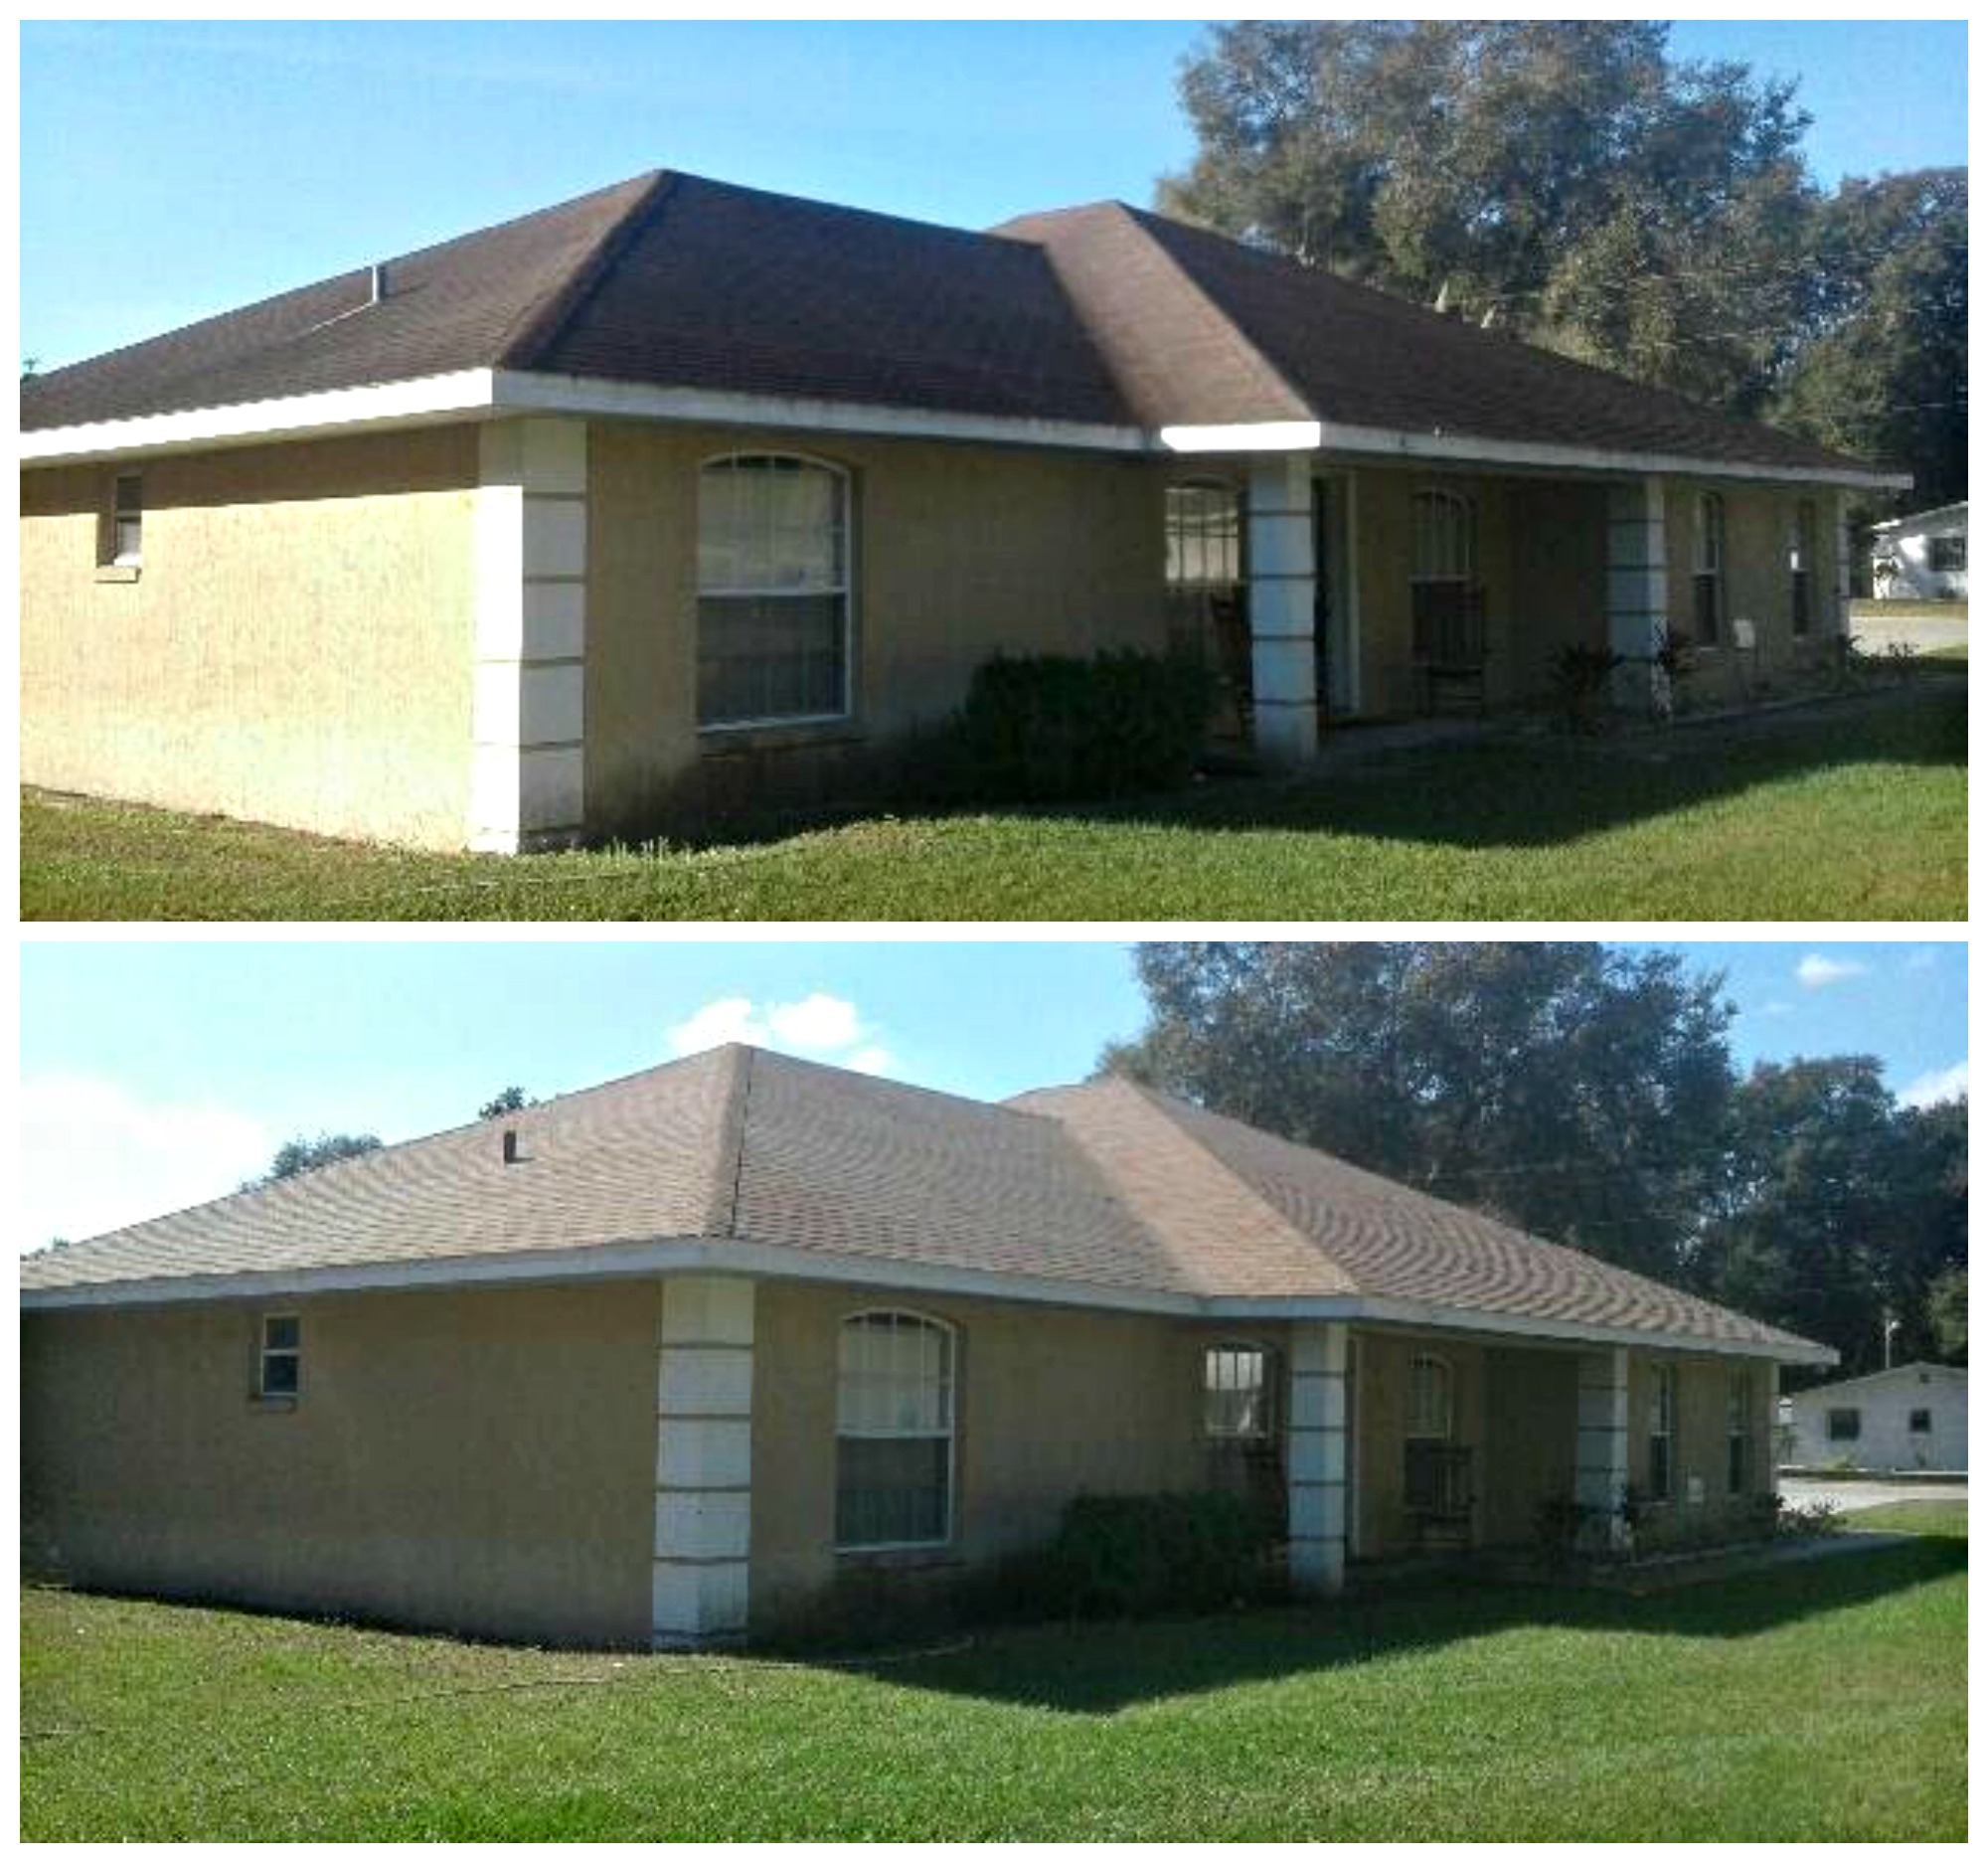 Another quality roof cleaning in lakeland florida top down exterior home cleaning - Exterior home cleaning ...